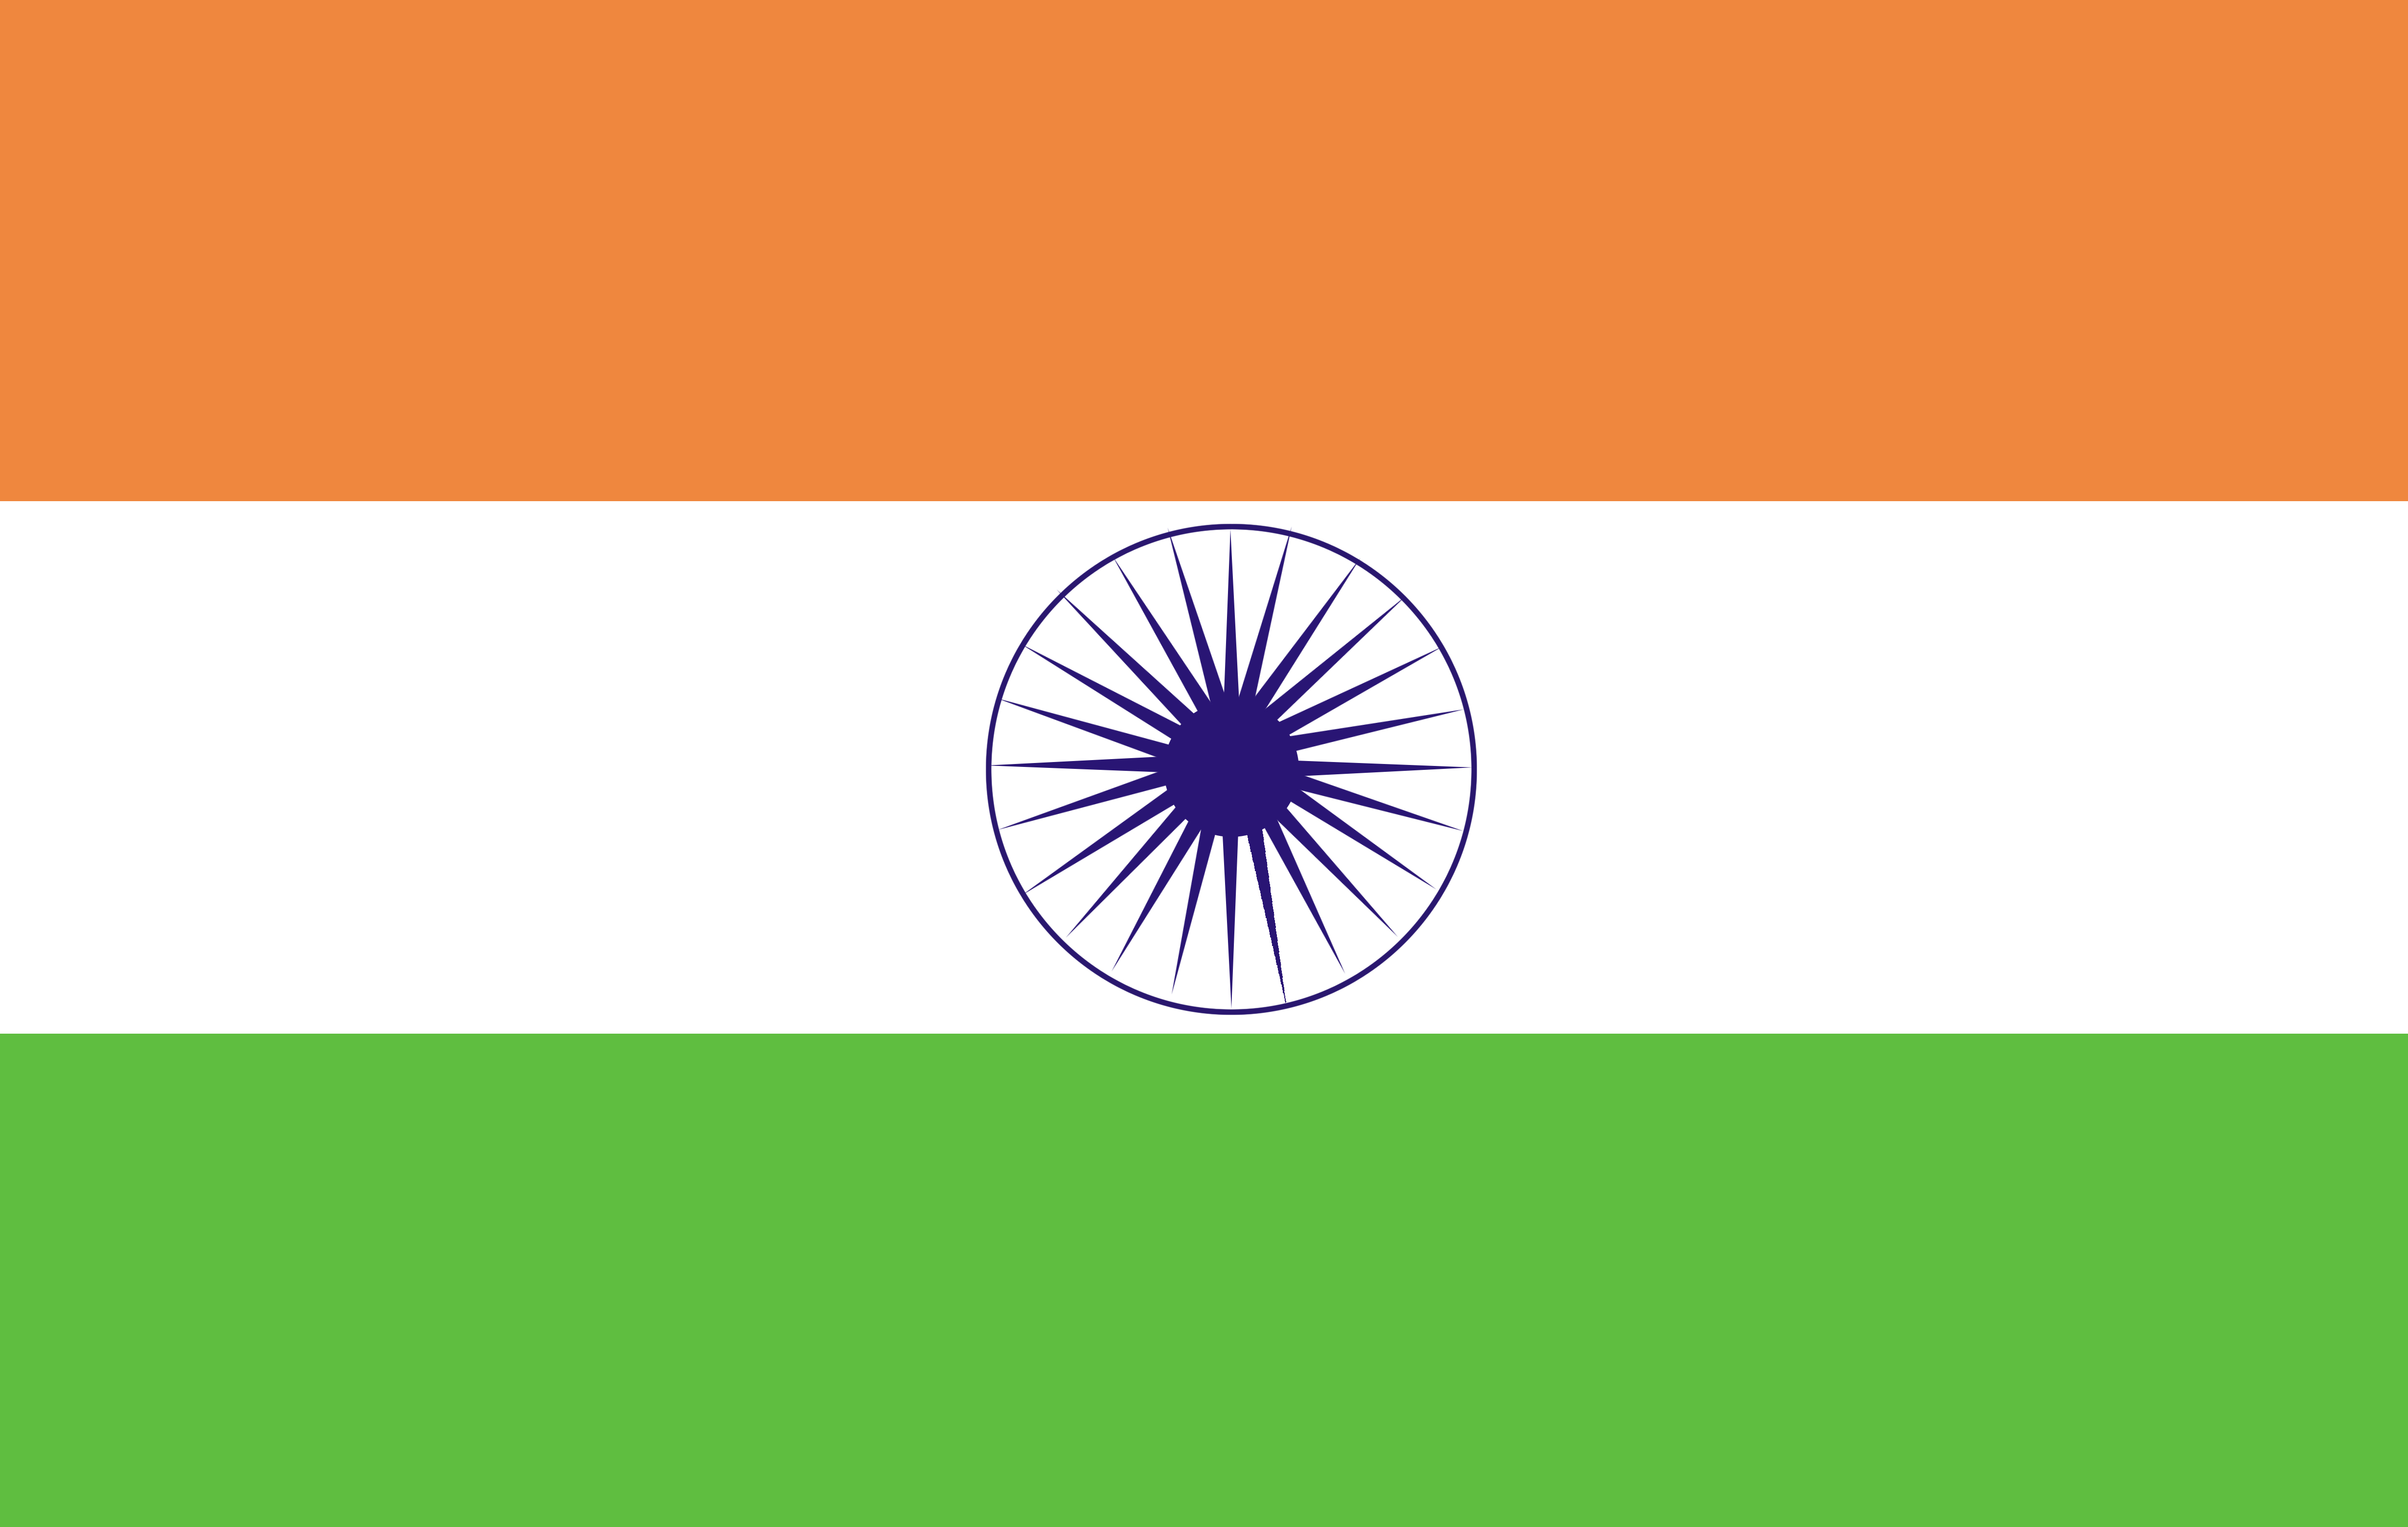 India Independence day is today